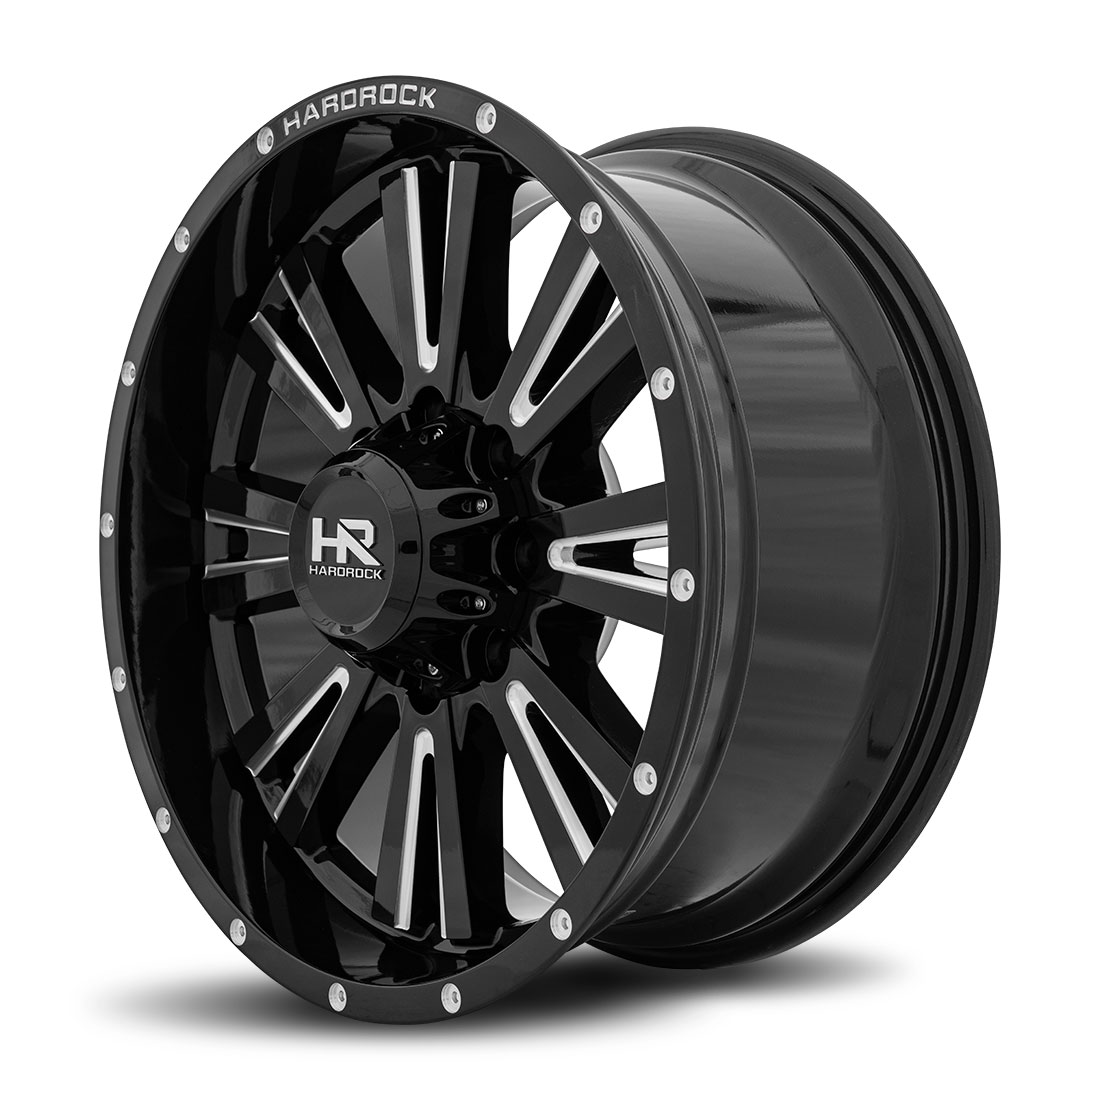 Hardrock Offroad Wheels H503 Spine-Xposed - Gloss Black Milled - 20x9